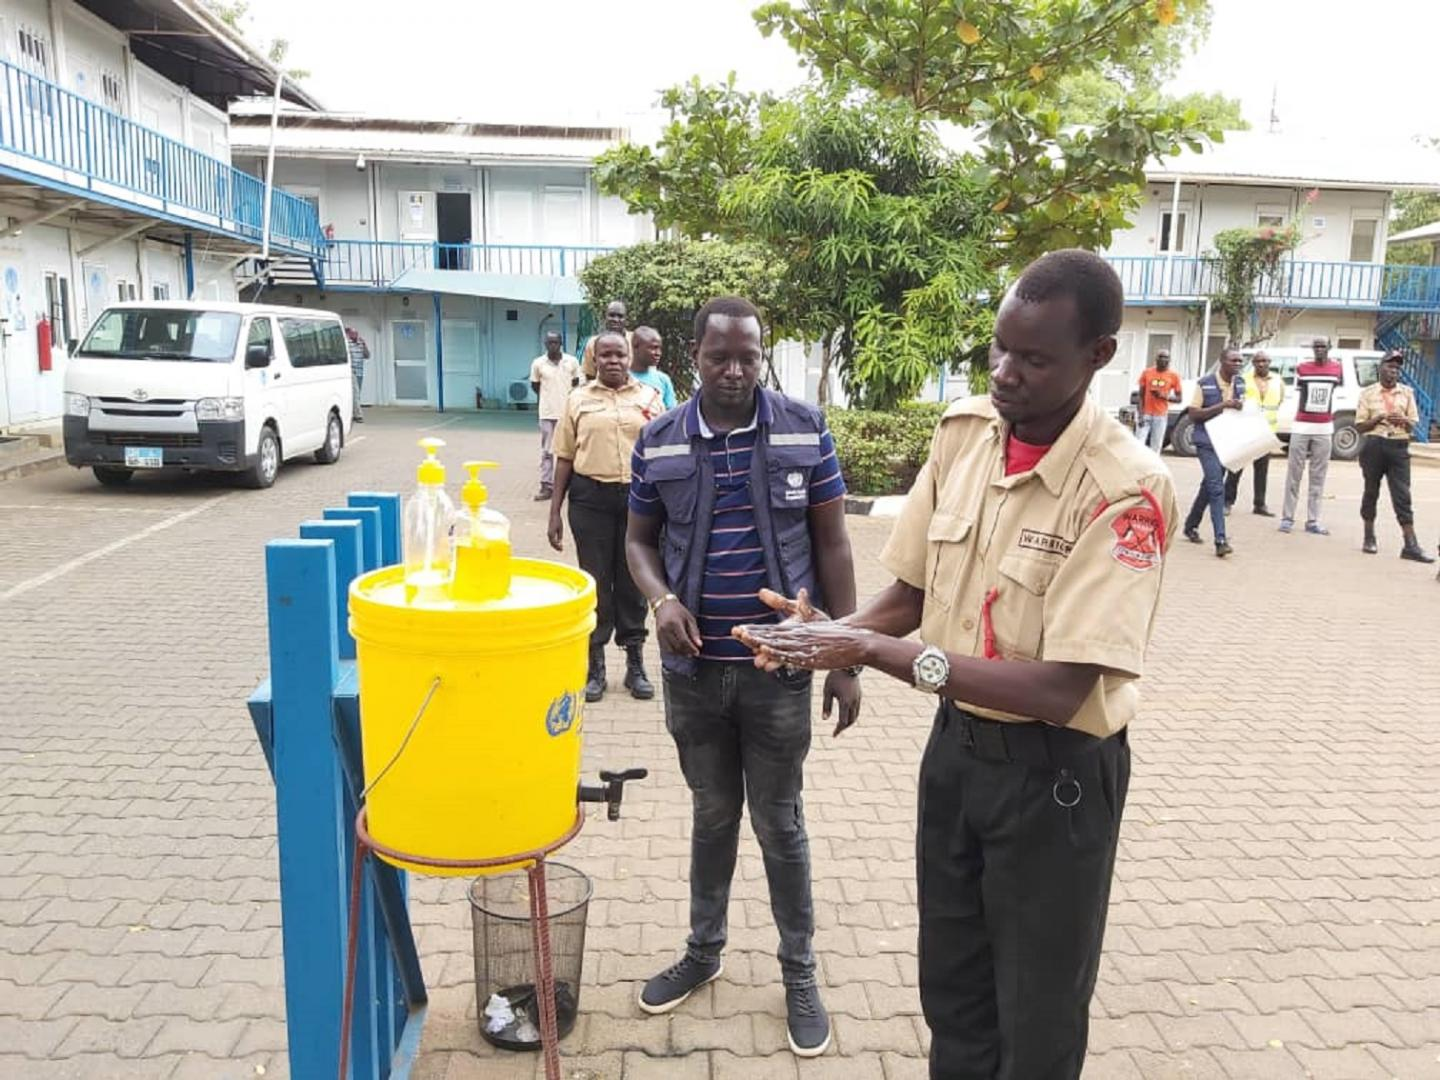 southsudan_covid-19_Security_guards_deployed_at_WHO_office_in_Juba_practices_hand_washing_as_a_recommended_measure_to_prevent_the_spread_of_COVID-19.jpg